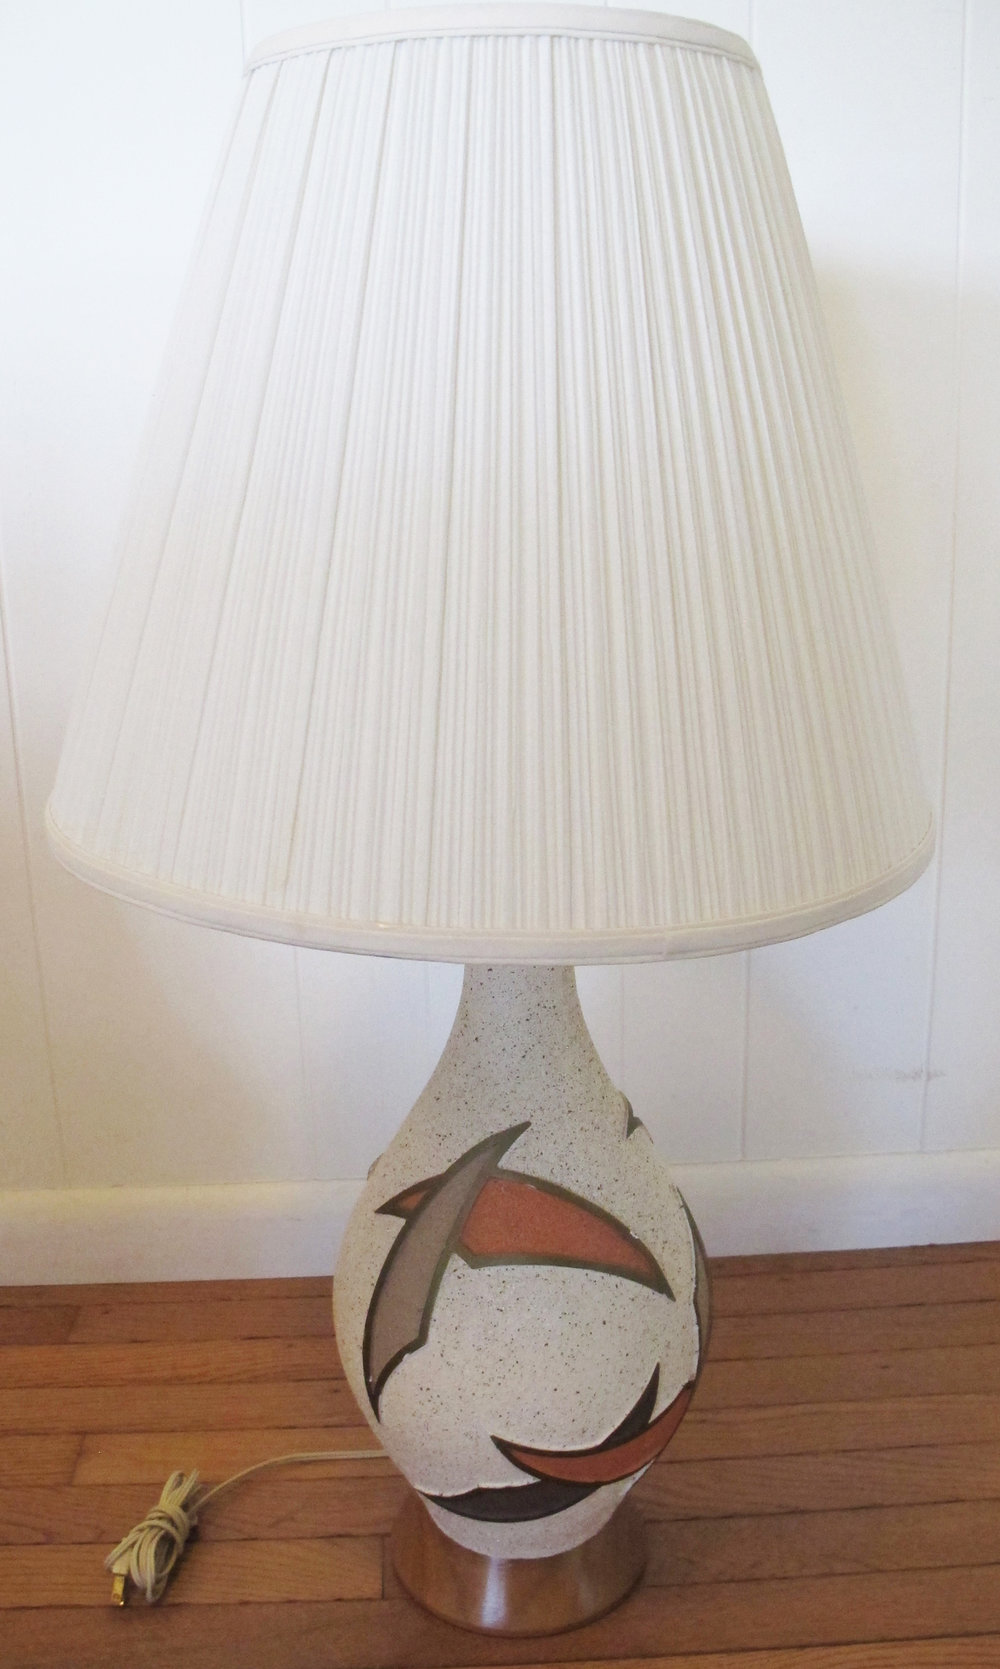 MID CENTURY CERAMIC LAMP WITH WOOD BASE